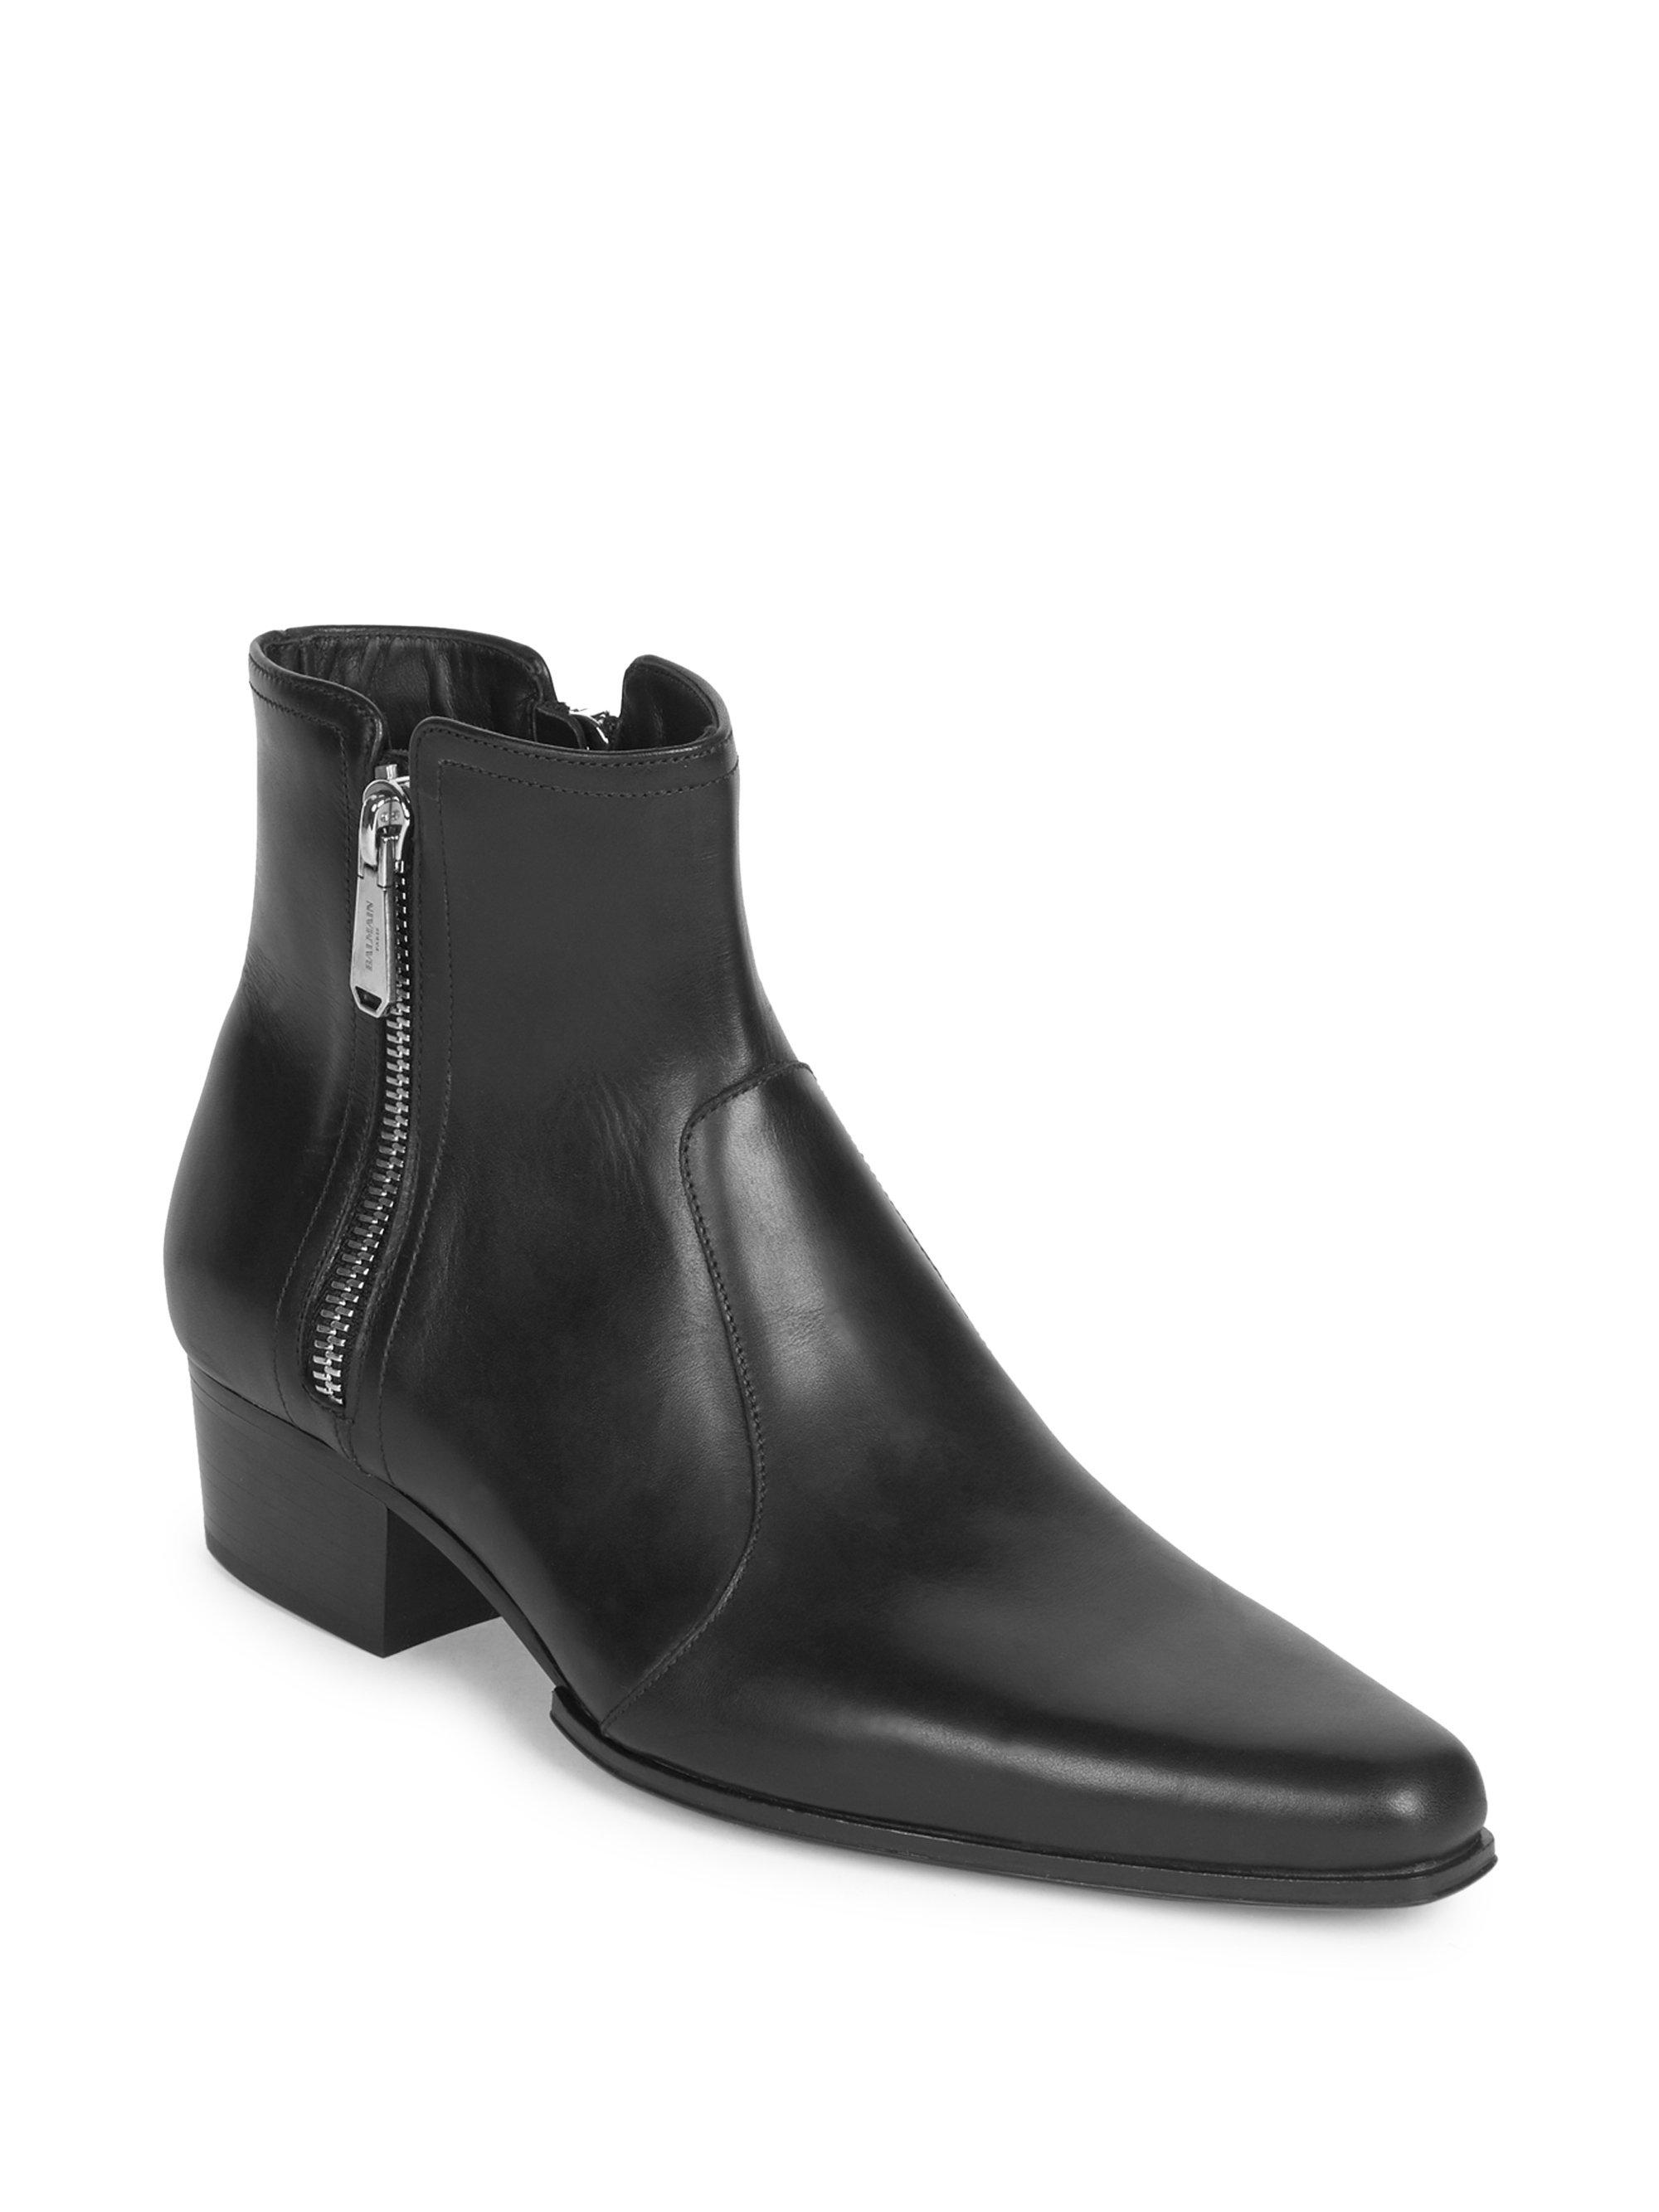 Balmain Double Side Zip Leather Ankle Boots